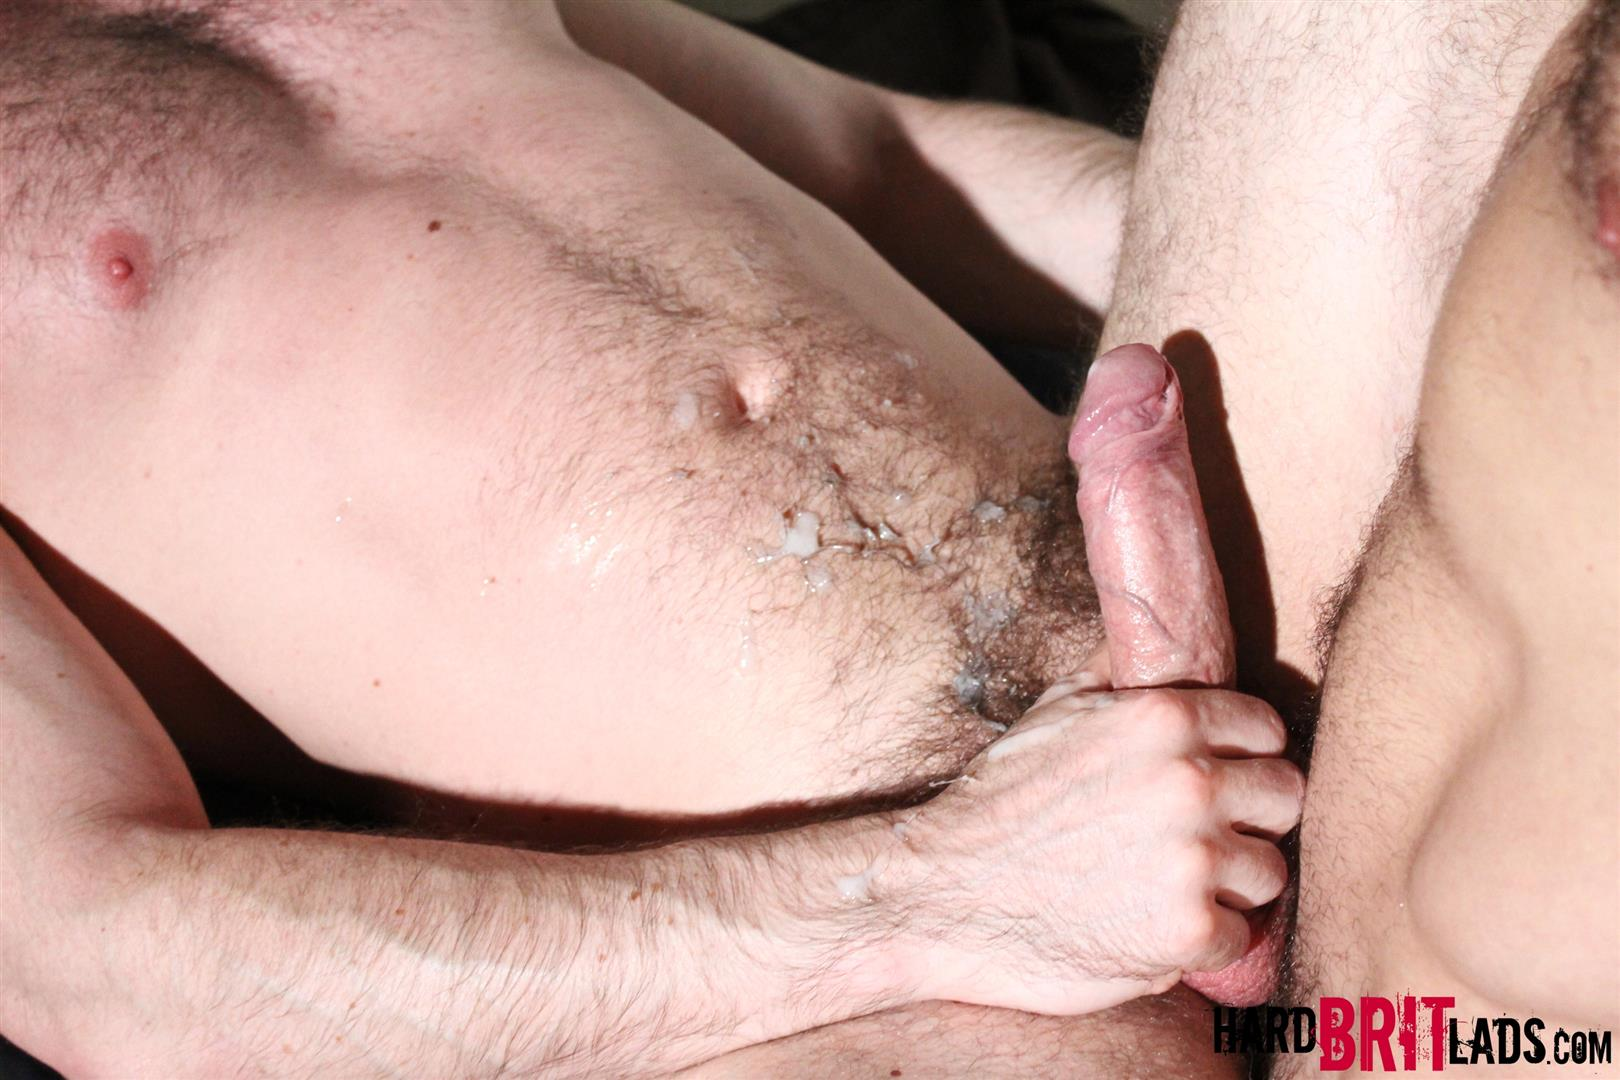 Hard Brit Lads Craig Daniel Scott Hunter Hairy Muscle Hunks With Big Uncut Cocks Fucking Amateur Gay Porn 18 Hairy Muscle Hunks Fucking And Eating Cum From Big Uncut Cocks